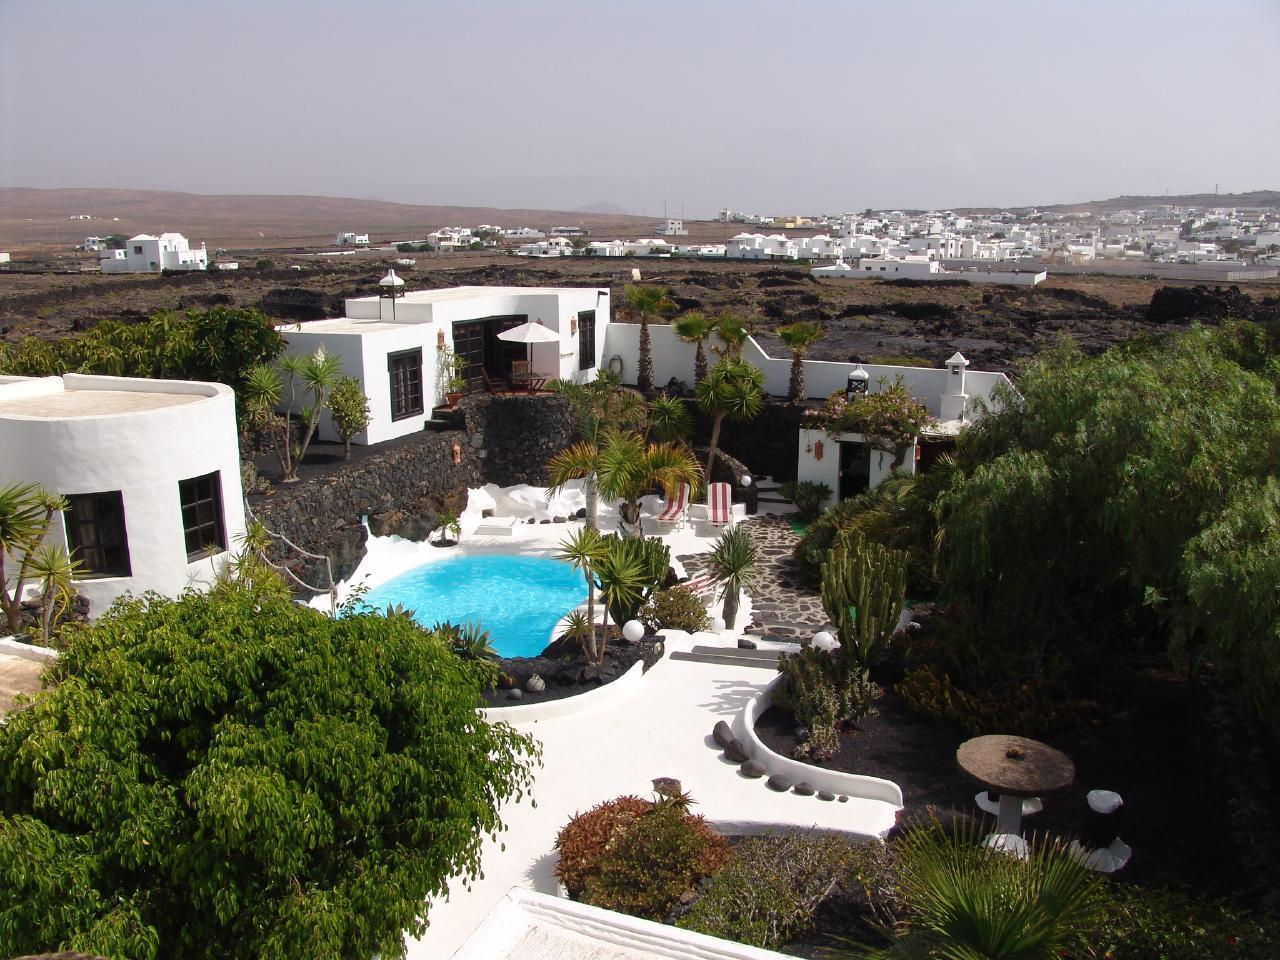 Holiday apartment CASA TEIGA SOL 1 SCHLAFZIMMER BUNGALOW MIT POOL (1682024), Tahiche, Lanzarote, Canary Islands, Spain, picture 10